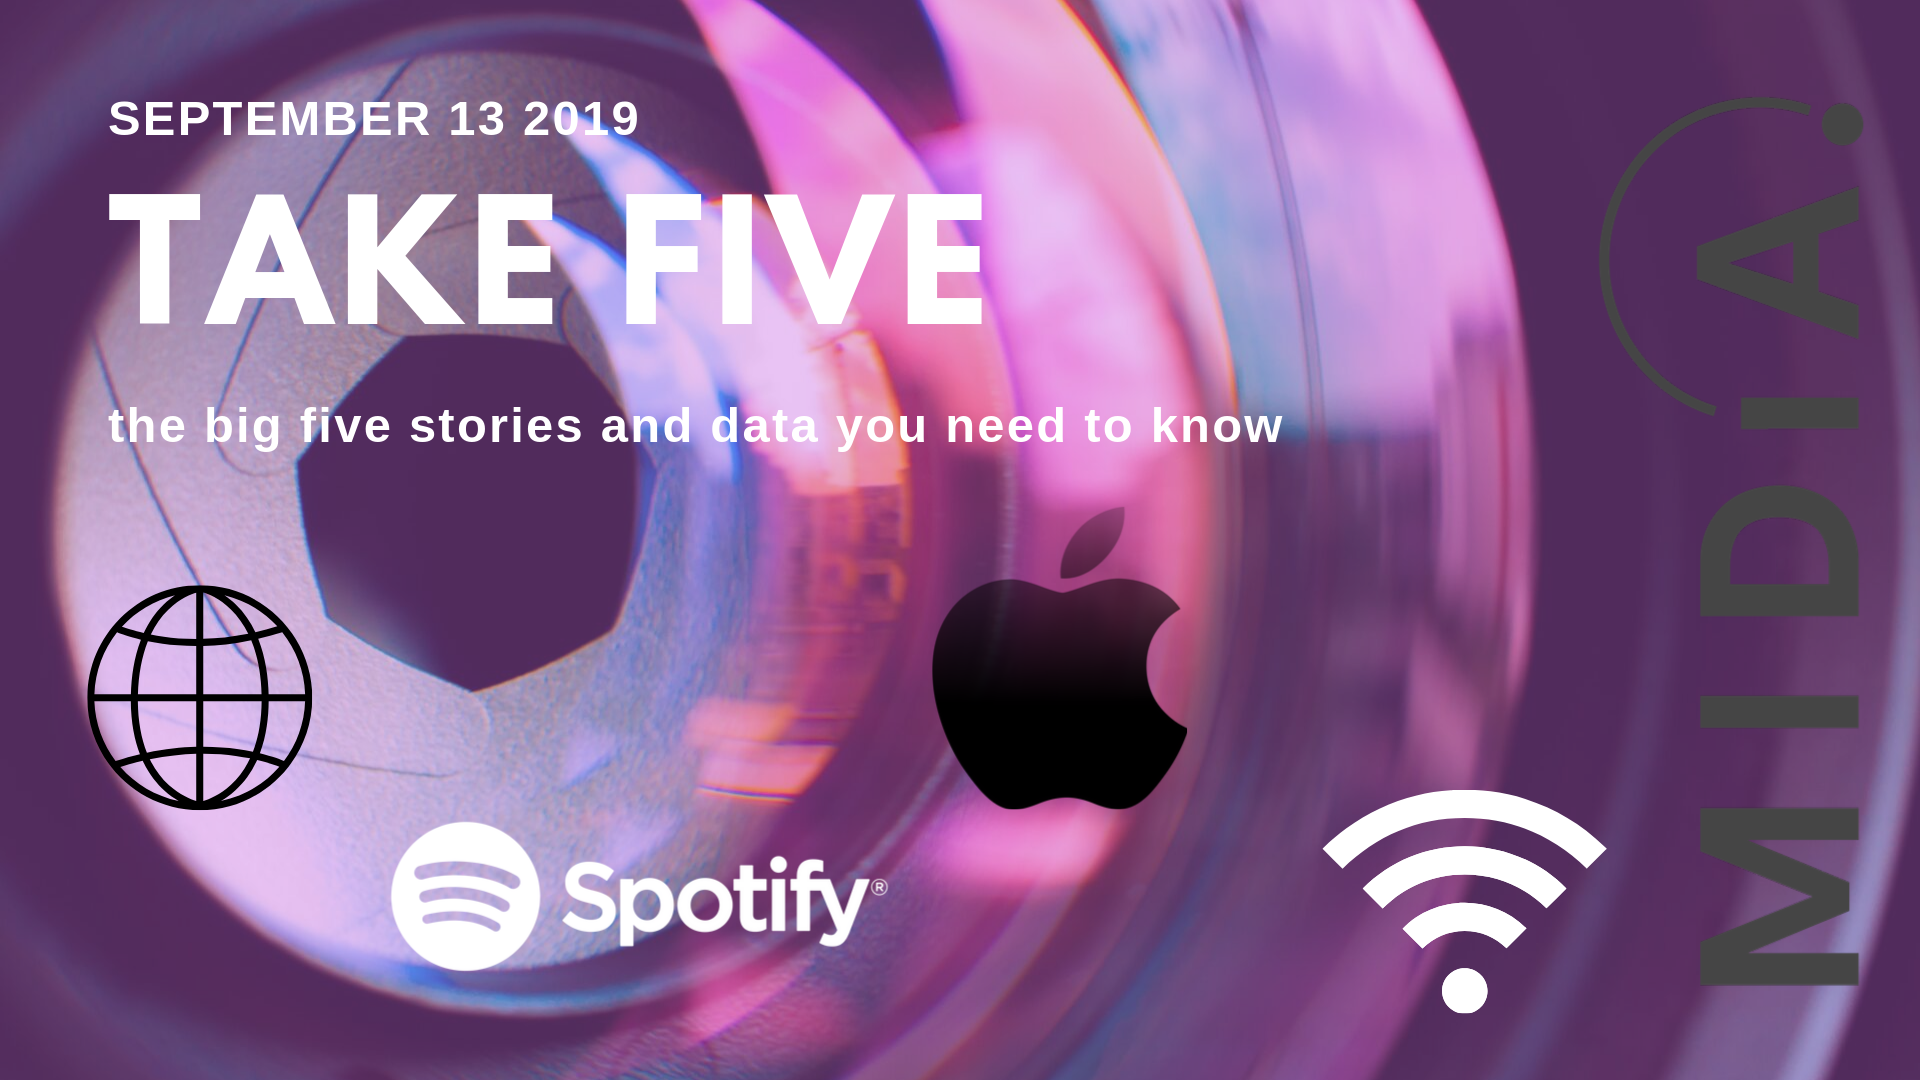 Cover image for Take Five (the big five stories and data you need to know) - September 16th 2019